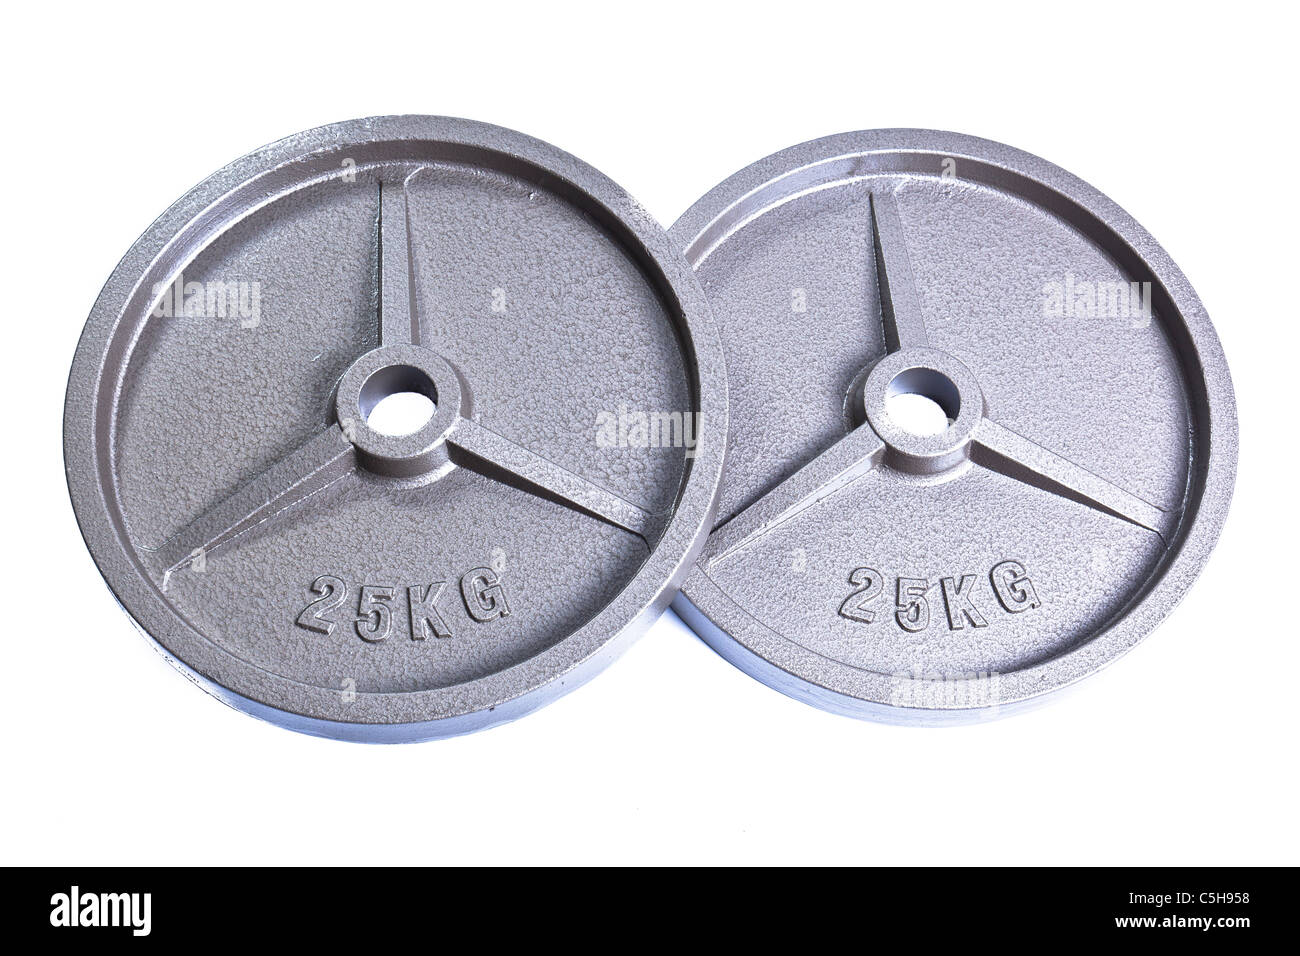 Weight lifting excercise equipment iron and rubber - Stock Image